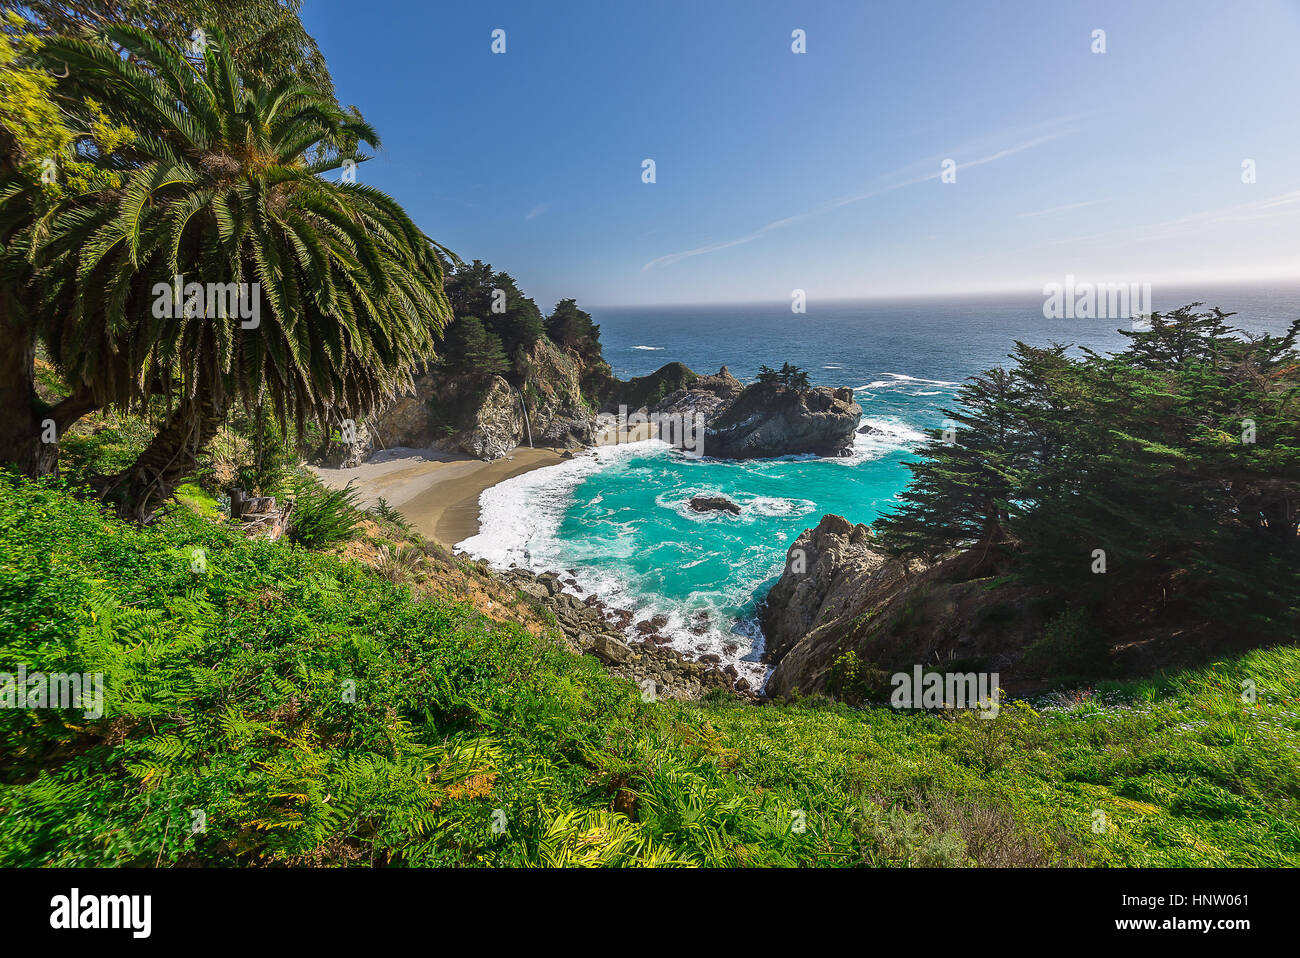 Beautiful landsape of McWay Fall in Big Sur California. Landscape Photography - Stock Image